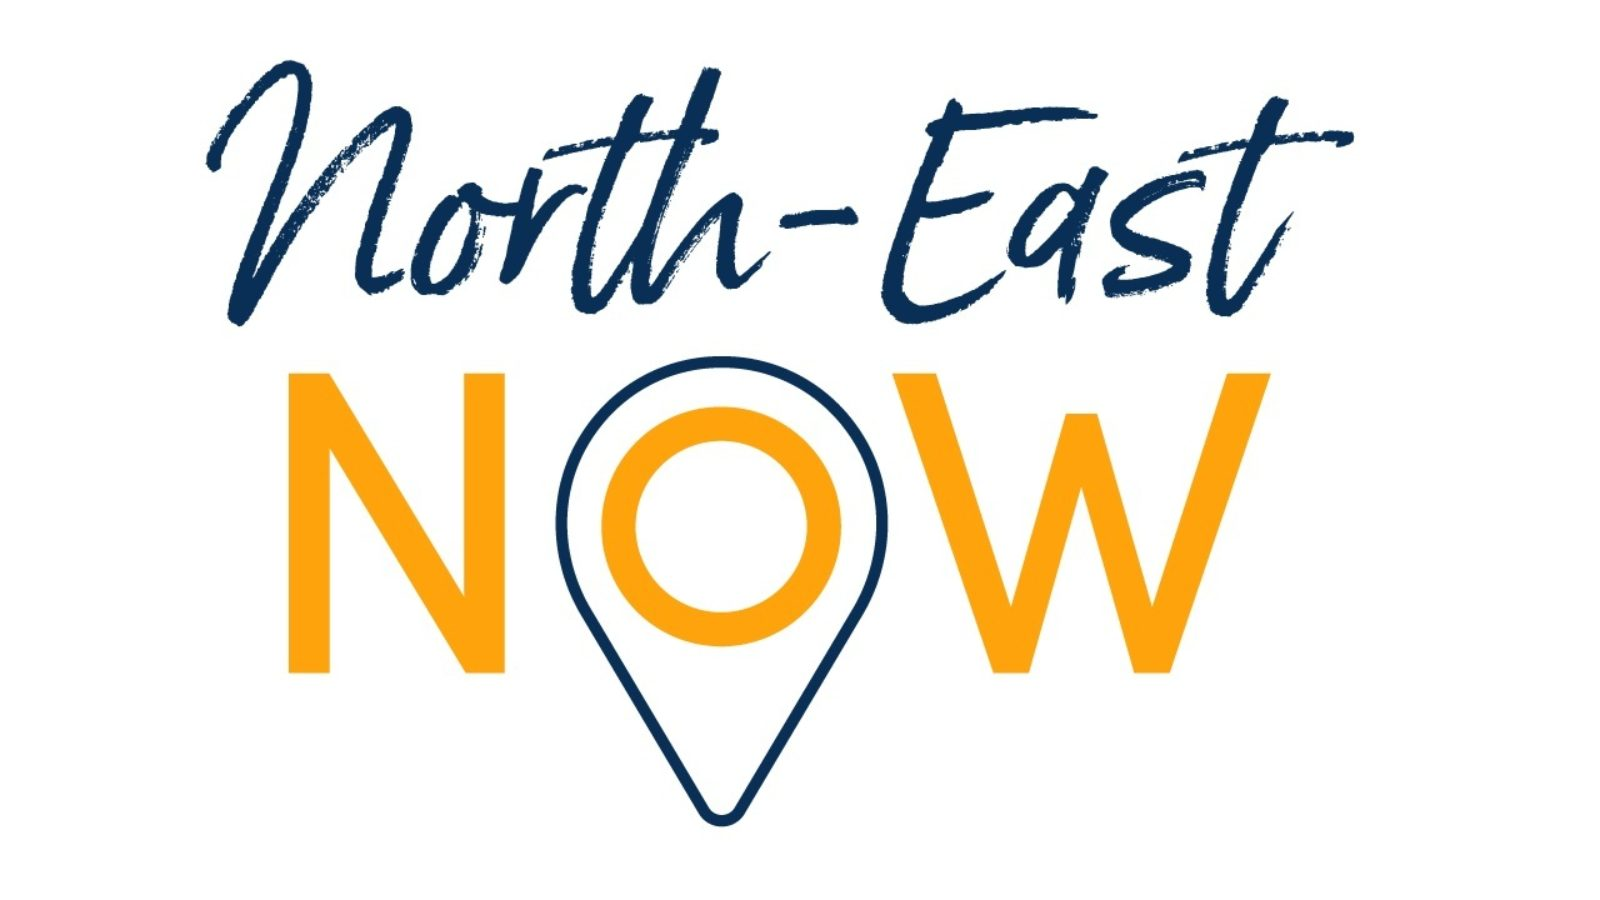 North East Now launched to provide region with a 'one-stop-shop' hub to support local